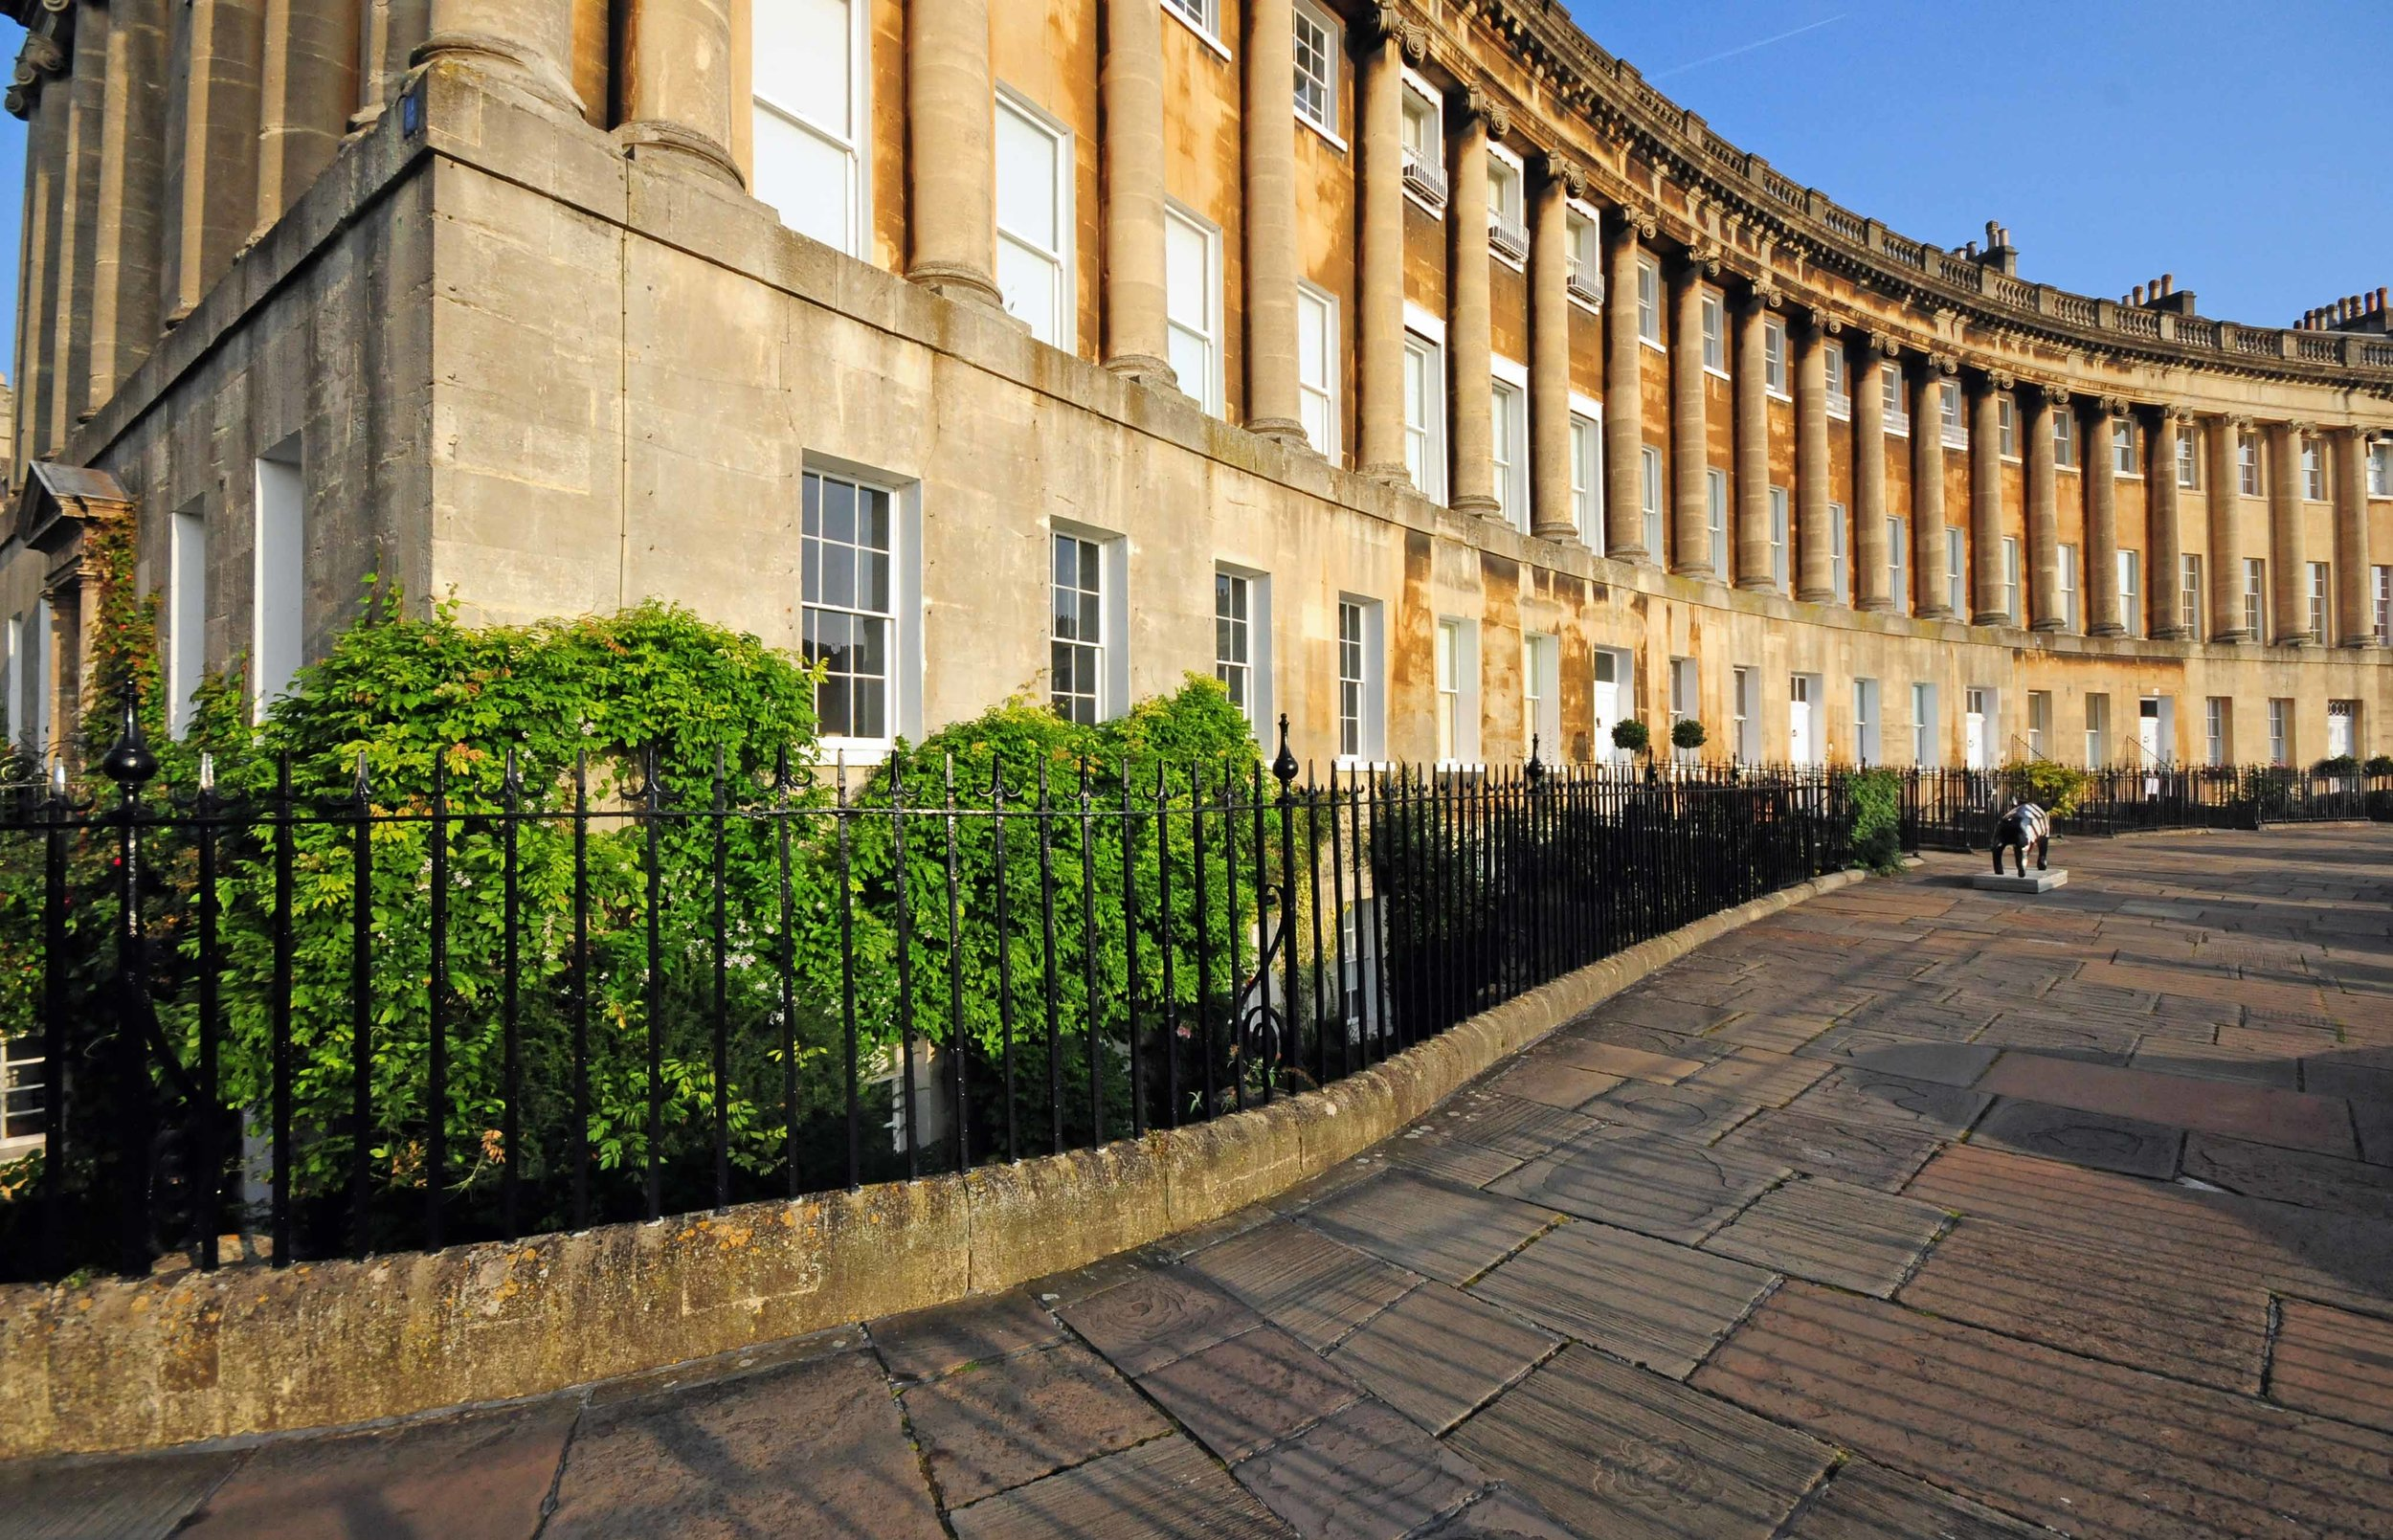 2176. Curved Railings, The Royal Crescent, Bath, England.jpg